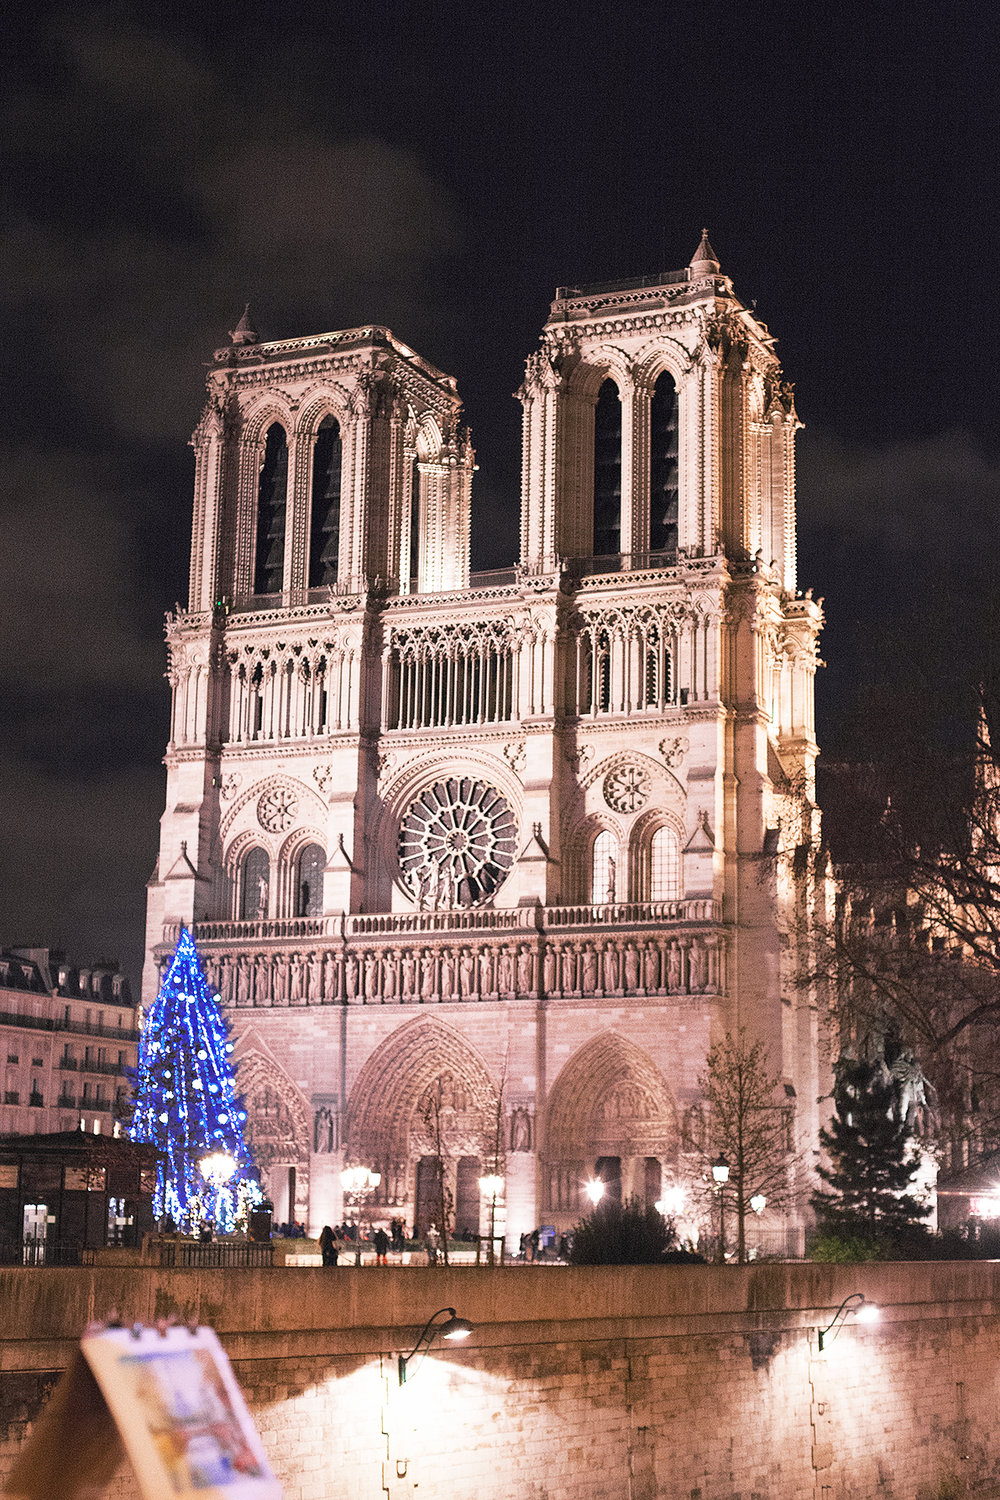 The Notre Dame at night